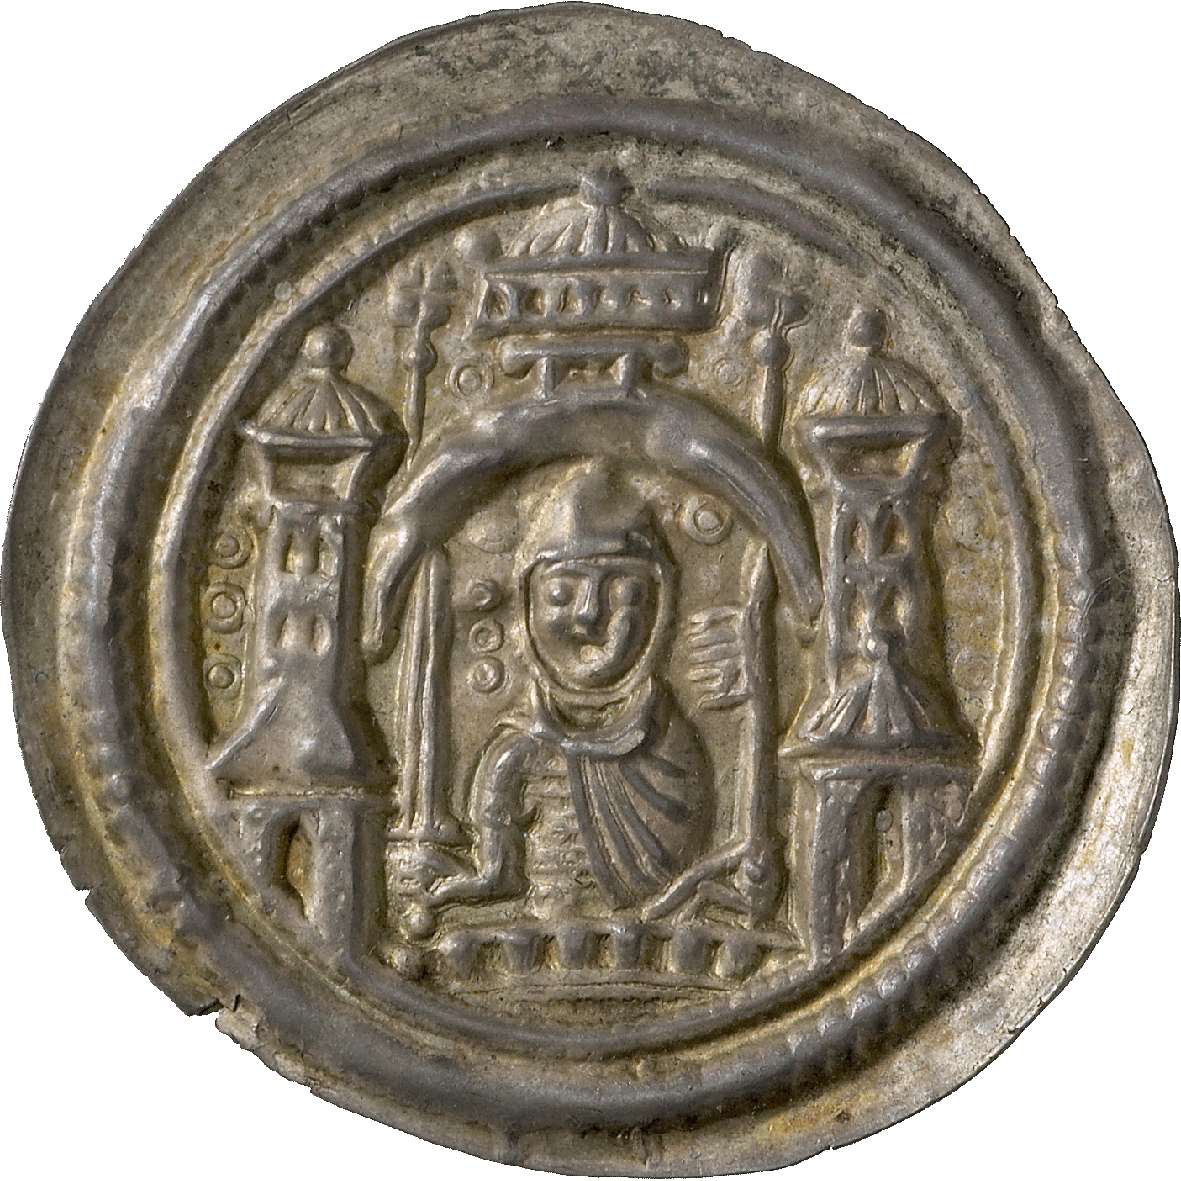 Holy Roman Empire, Margraviate of Brandenburg, Albert the Bear, Bracteate (obverse)